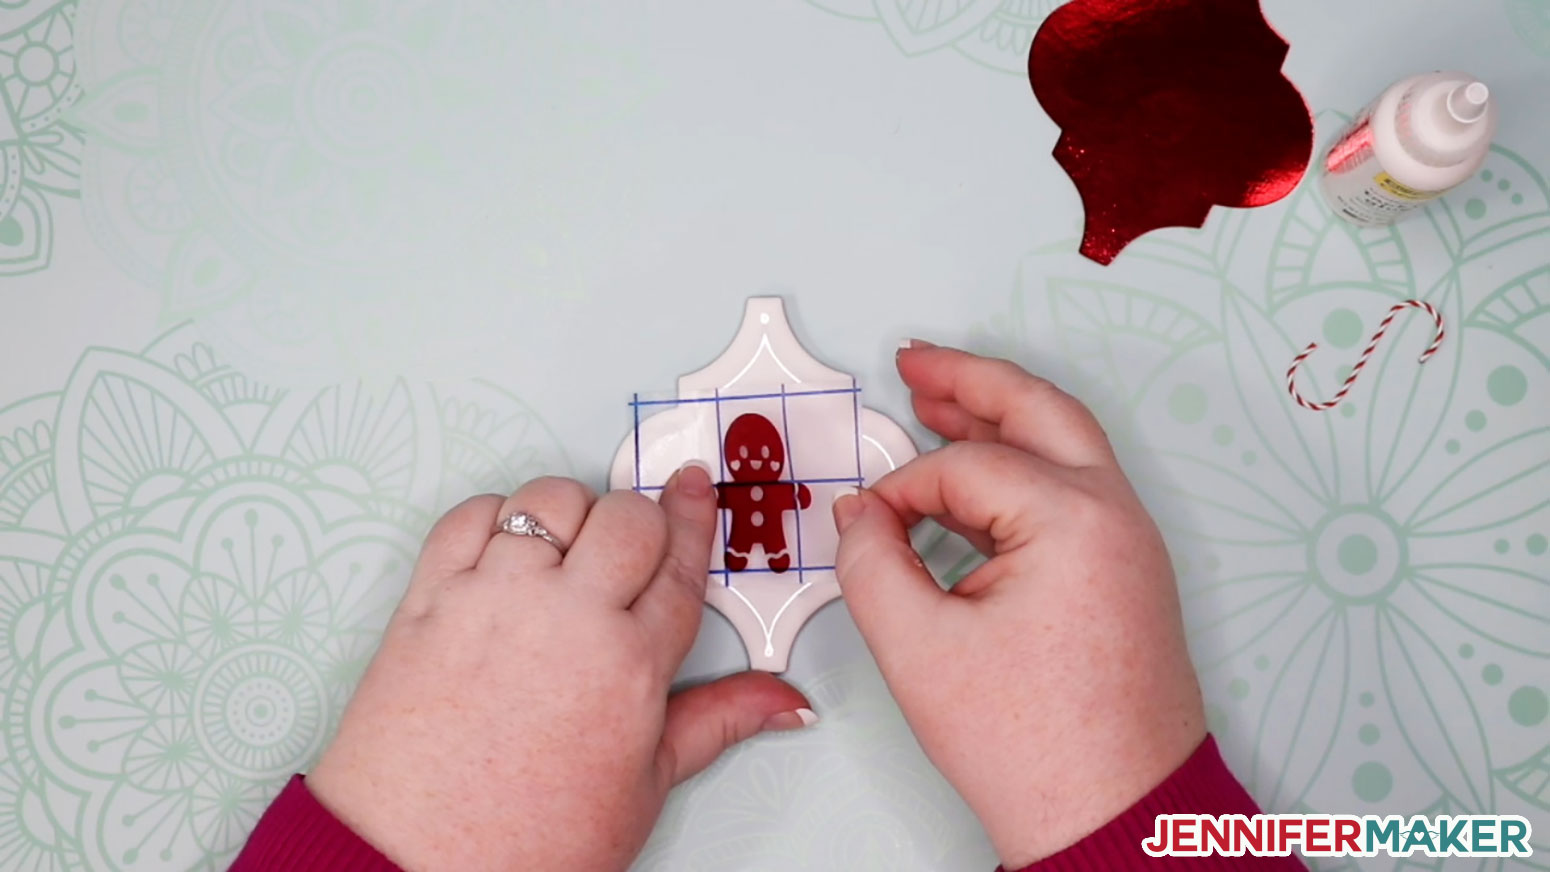 Diy Personalized Tile Ornaments Templates Designs Jennifer Maker